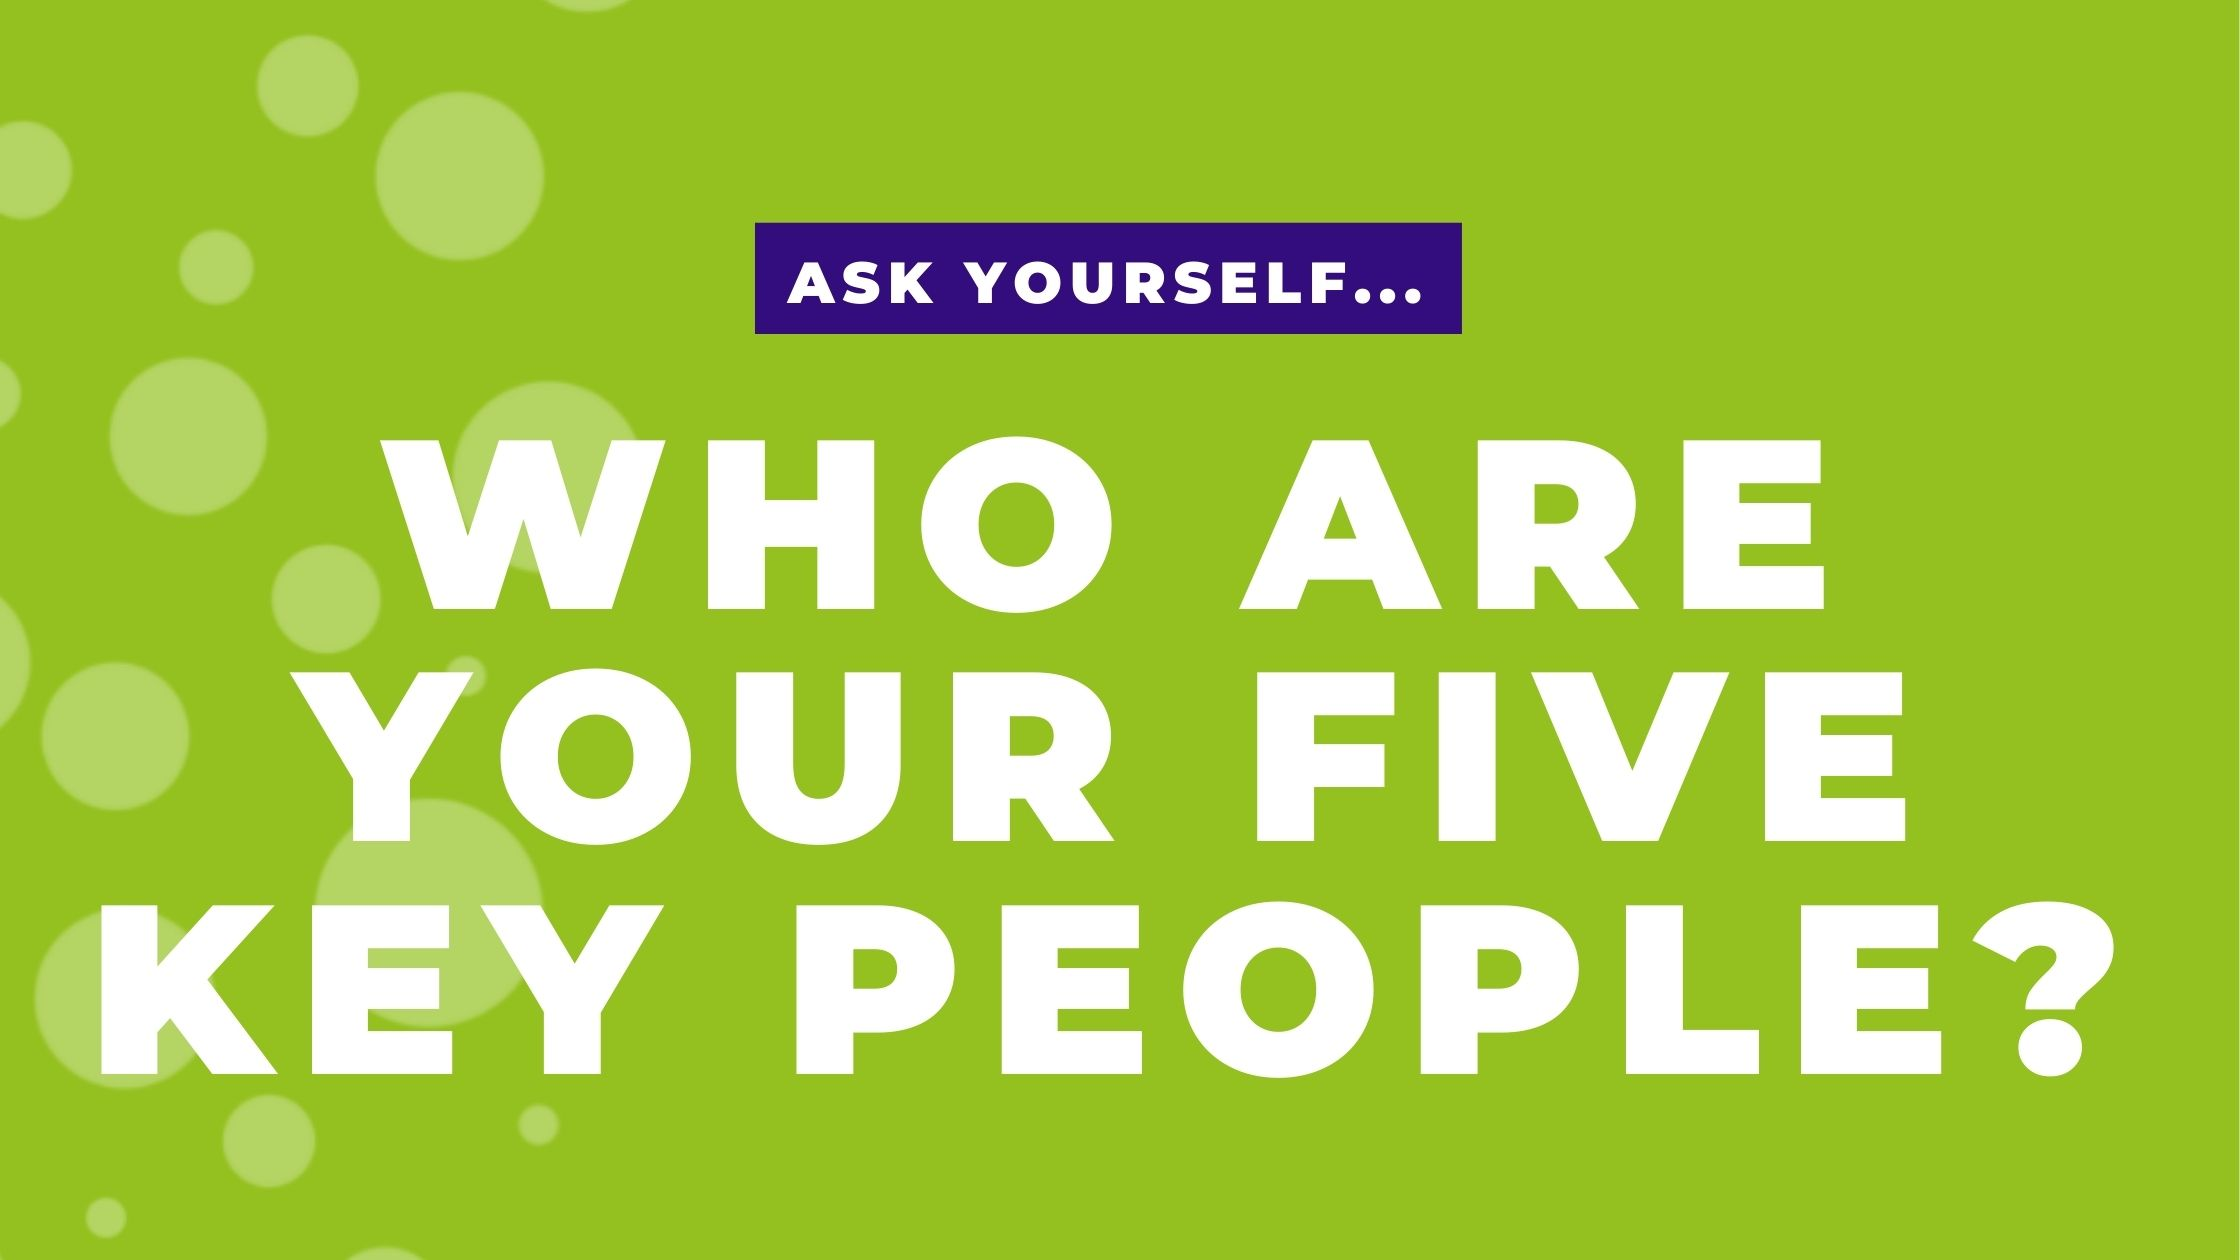 Identify the five key people supporting your business